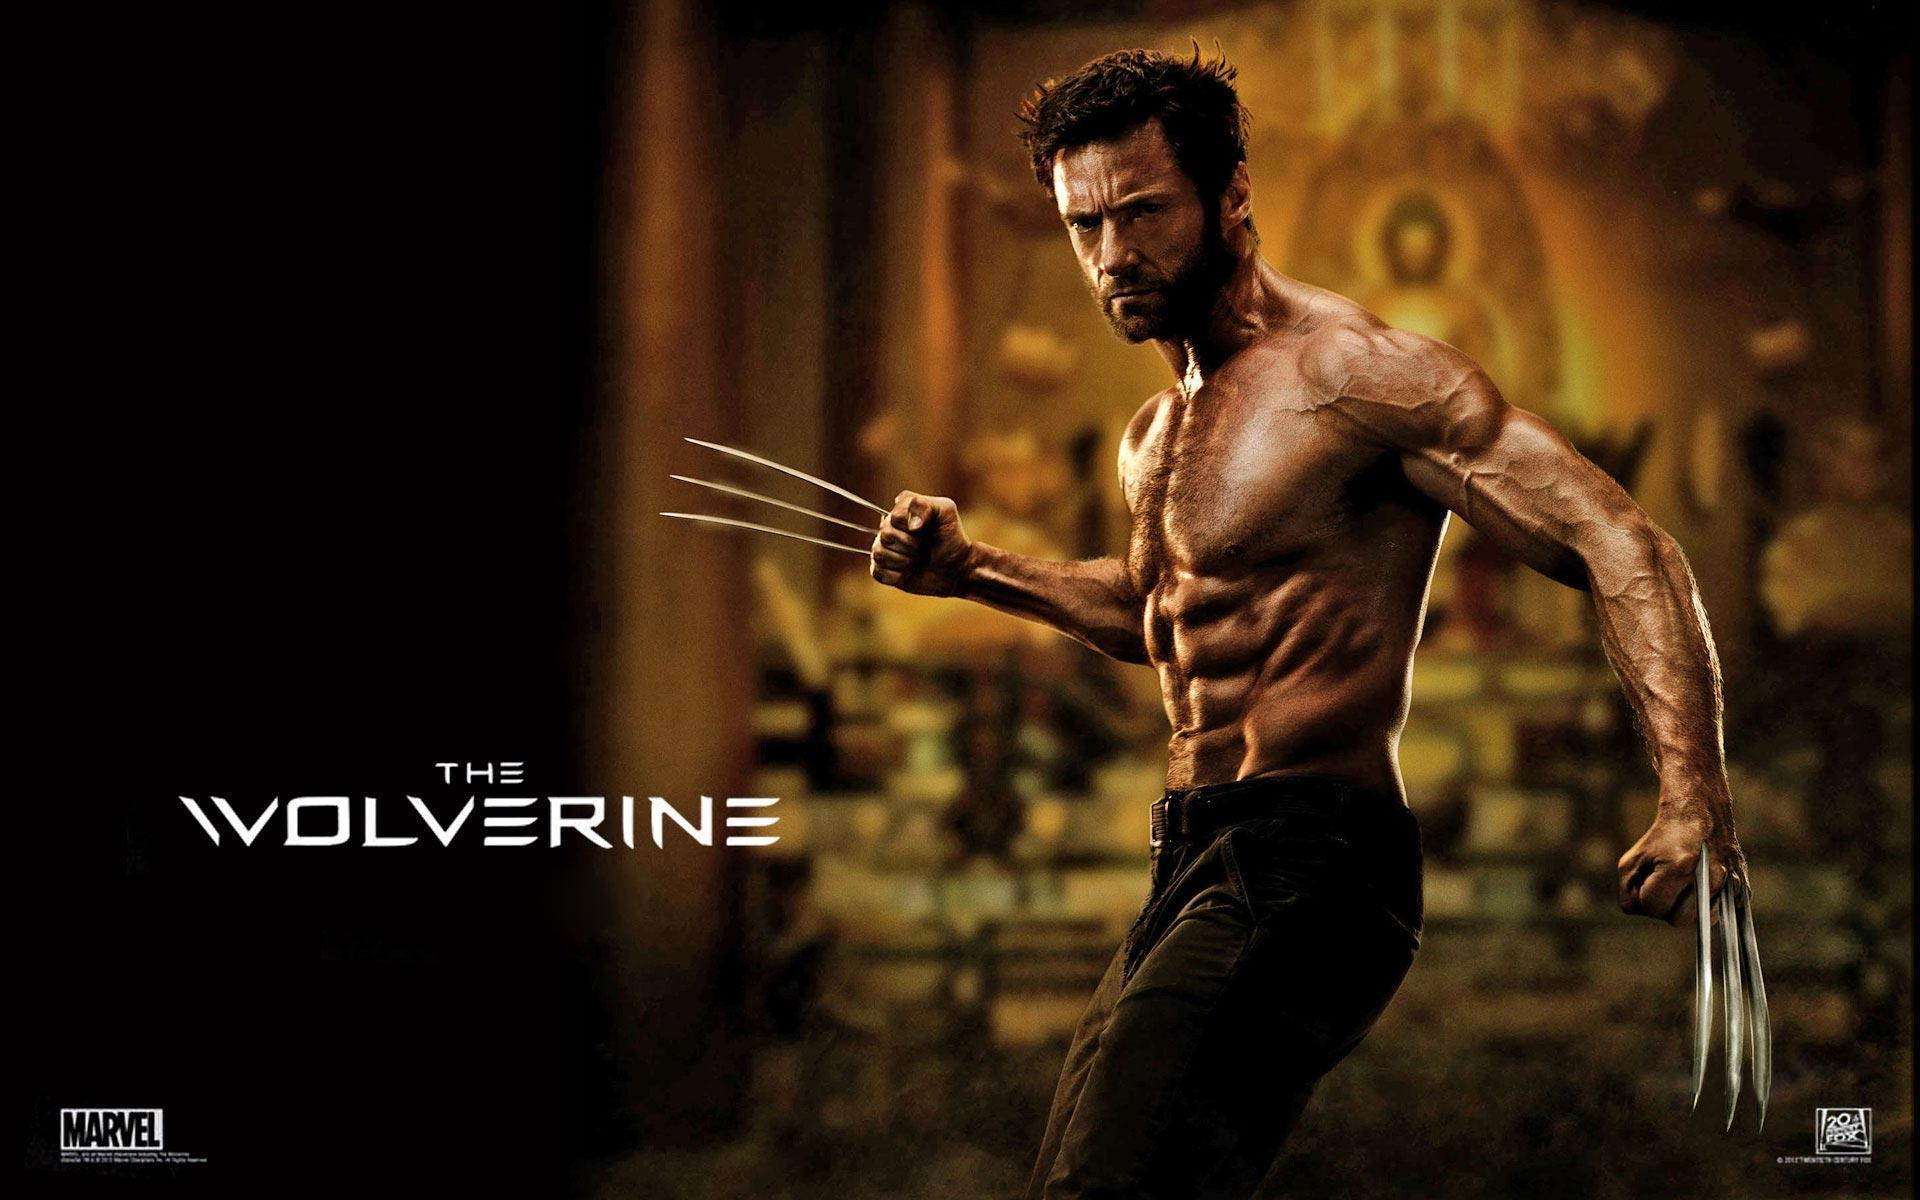 The Wolverine 2013 Movie Wallpapers | HD Wallpapers